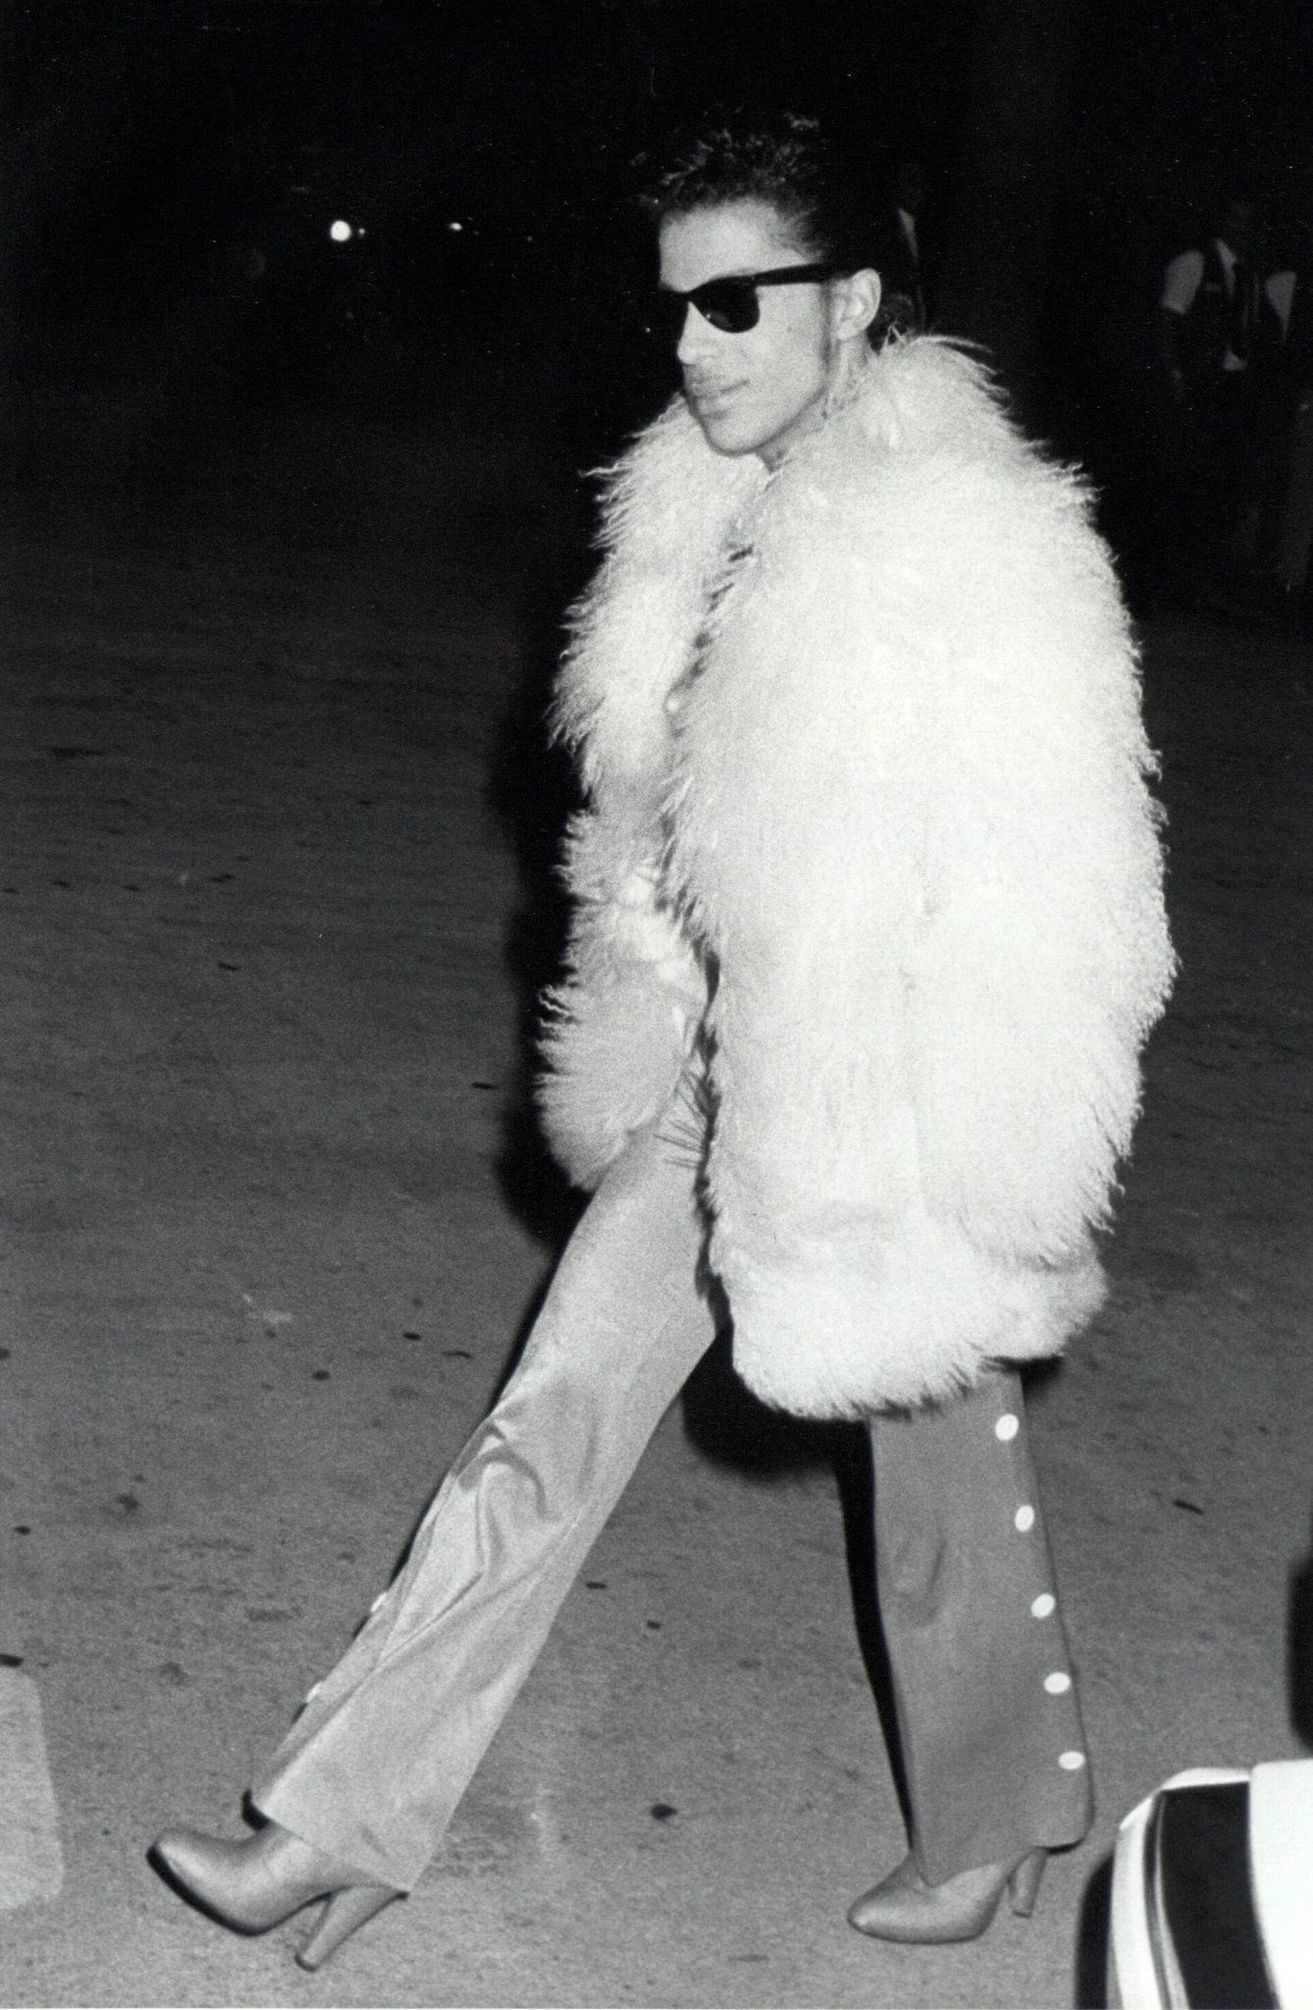 Prince wearing a fur coat